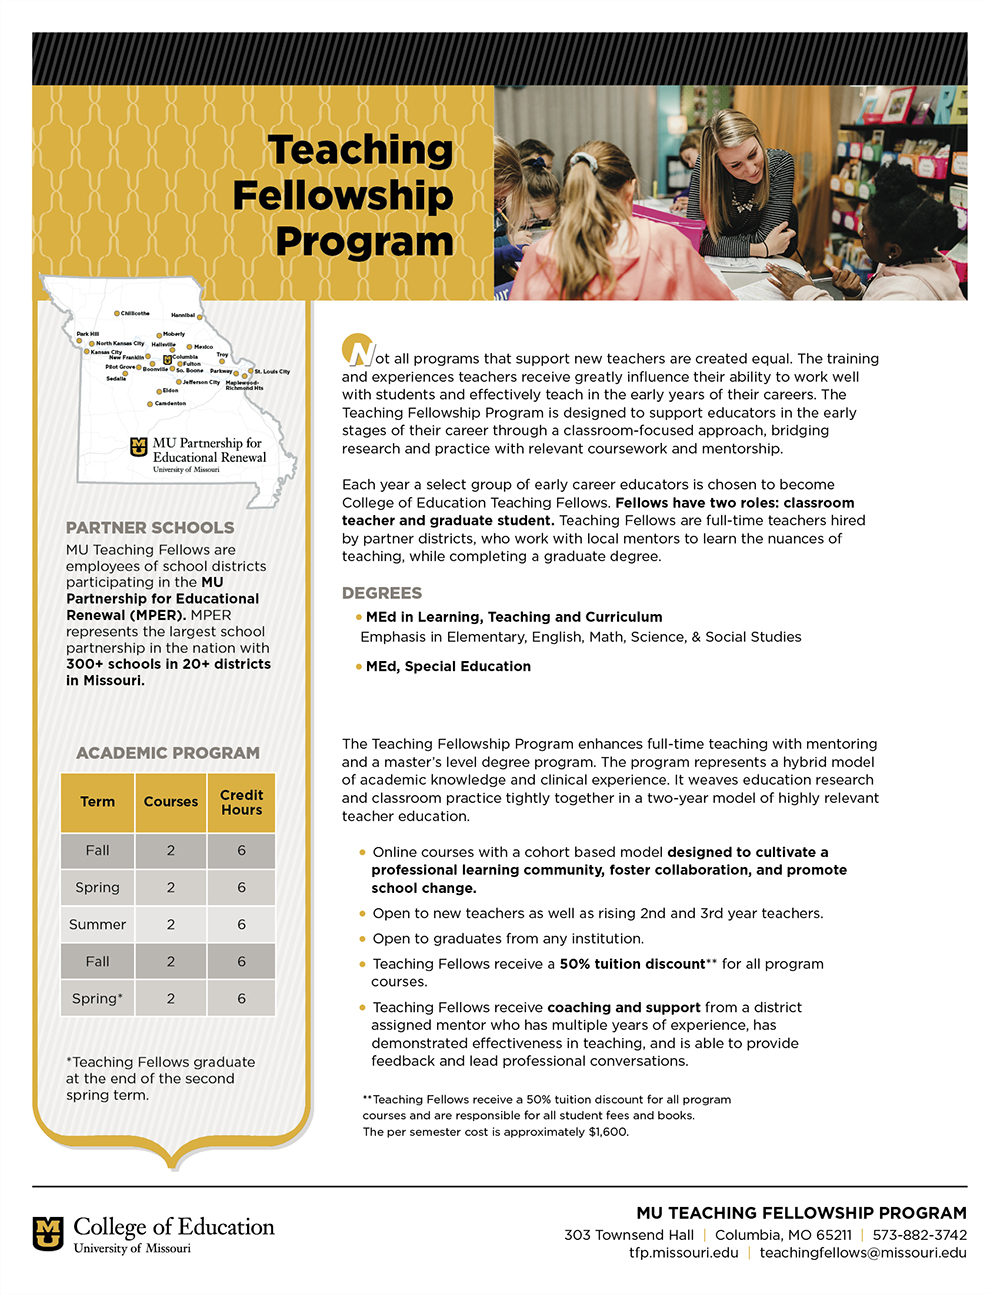 University of Missouri College of Education Teaching Fellowship Program Info Sheet, 2018